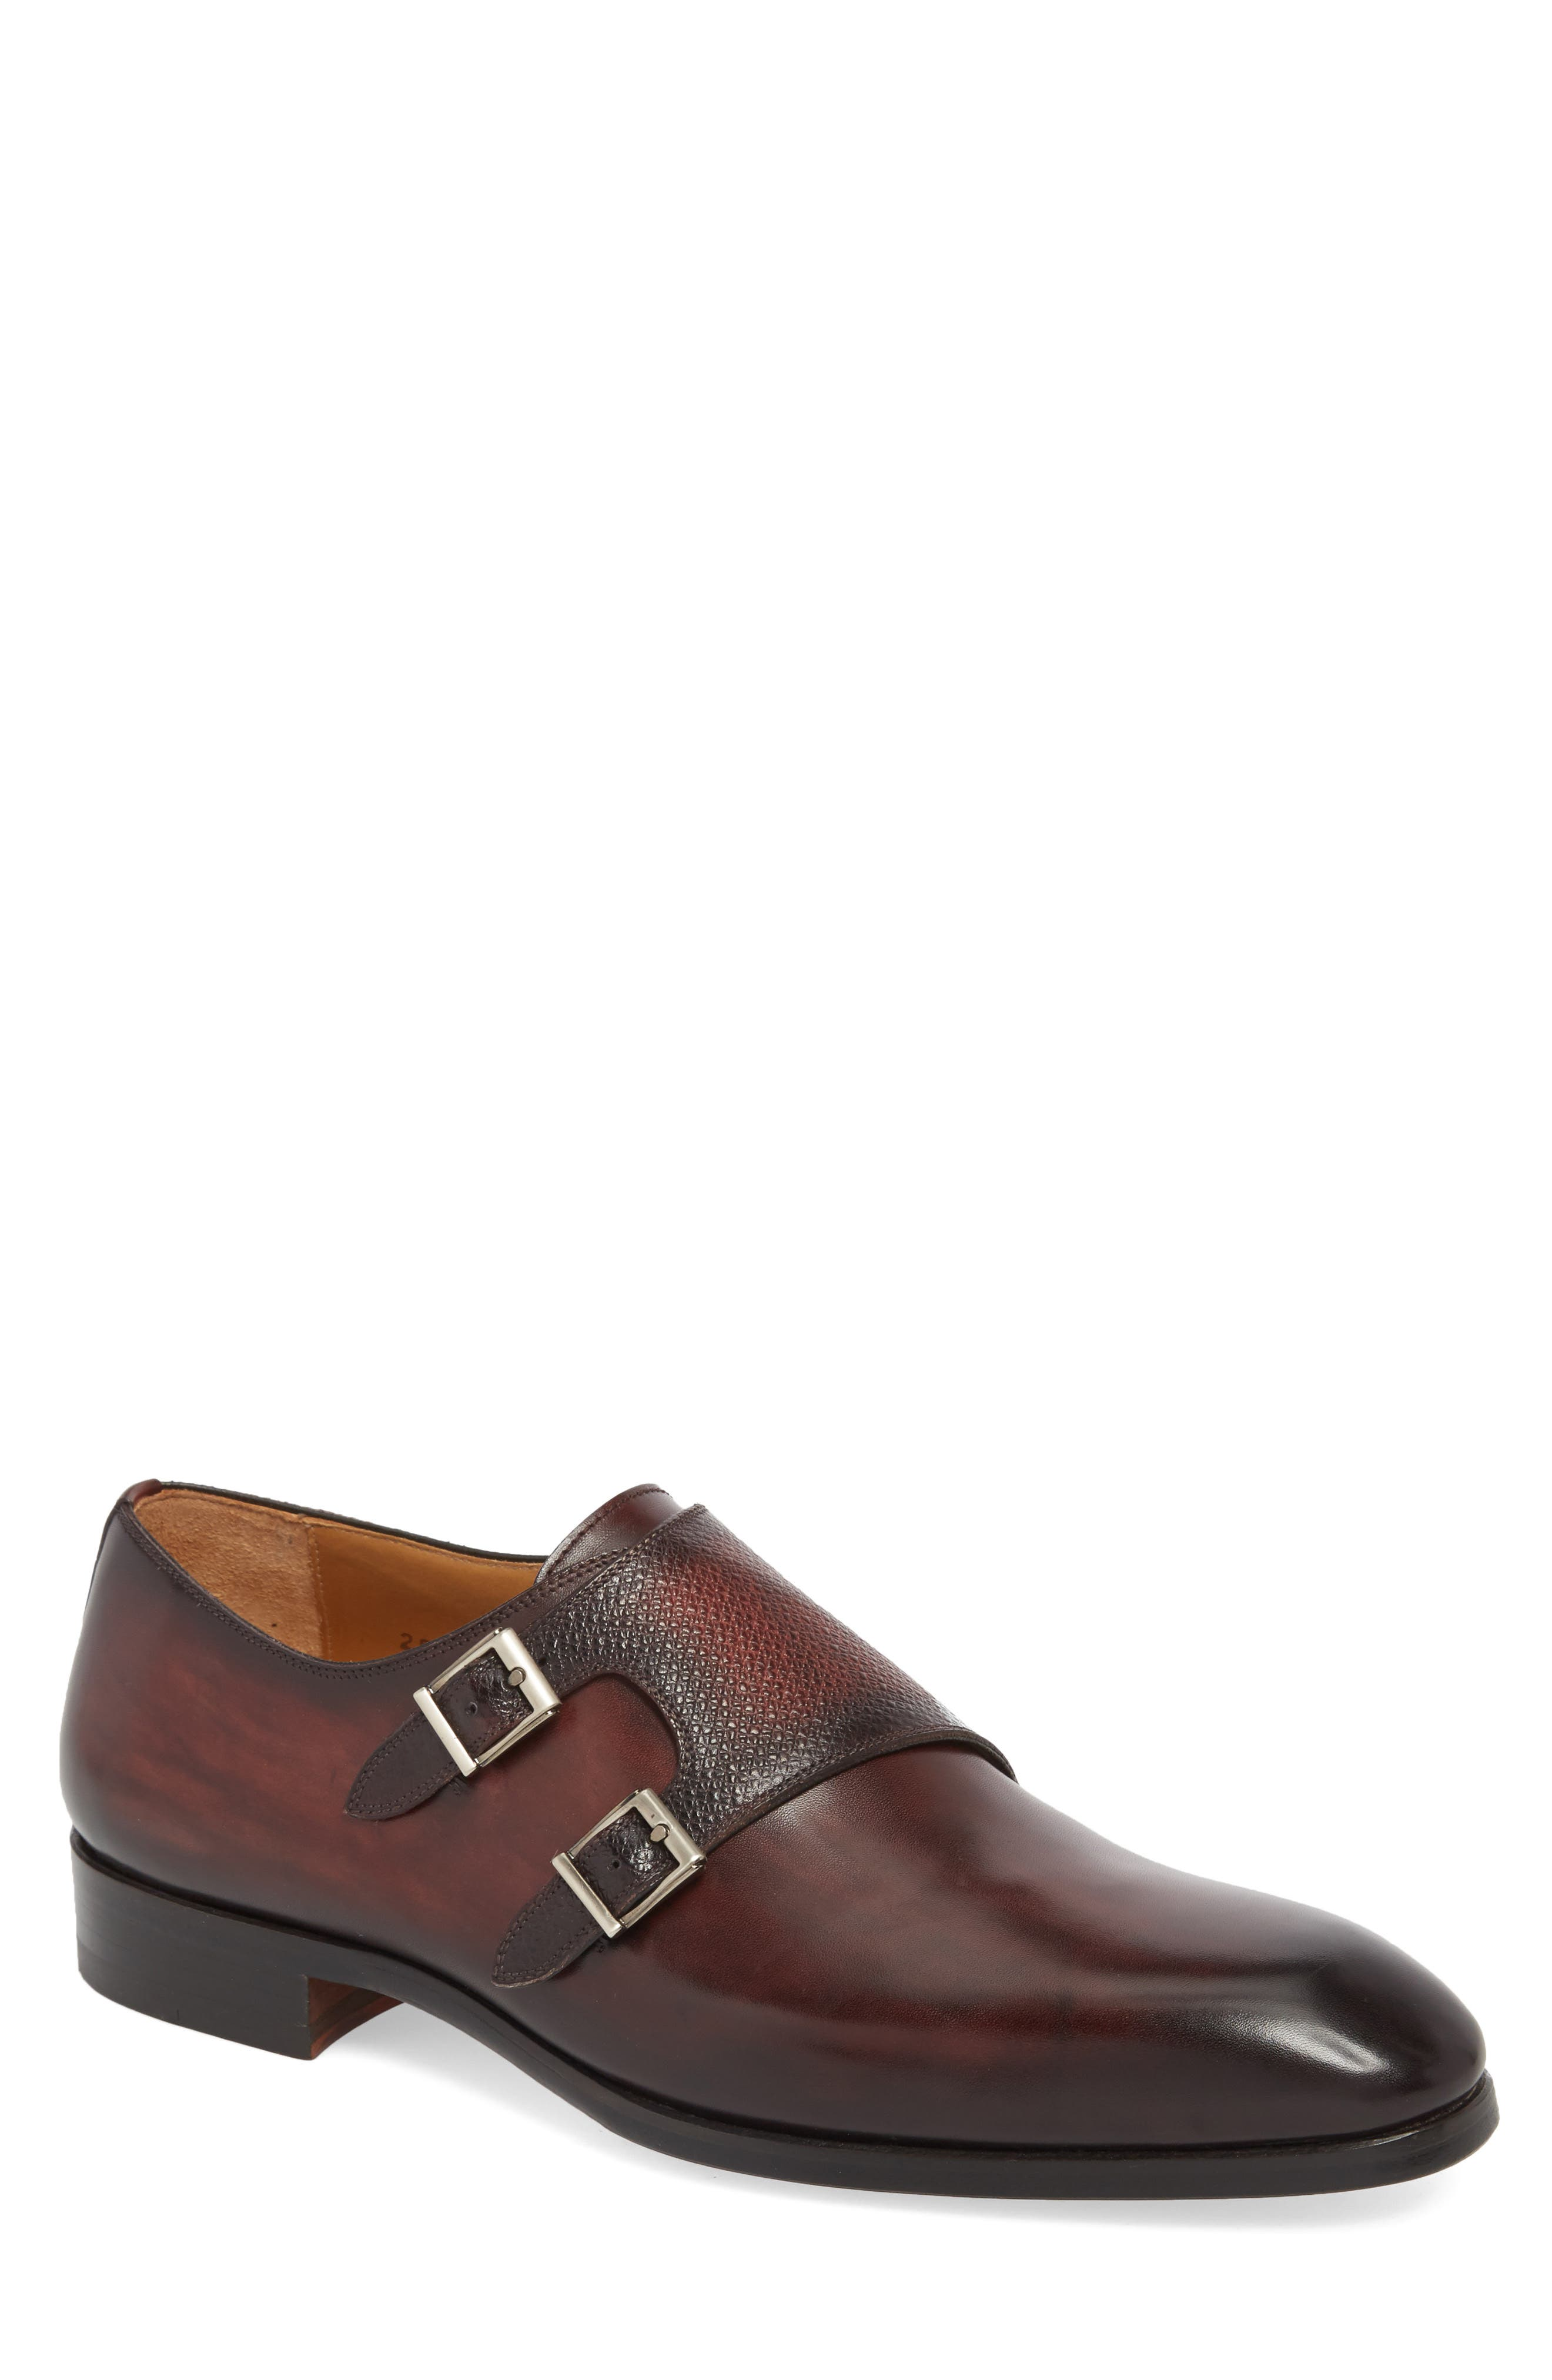 Arlo Pebbled Monk Shoe,                         Main,                         color, BURGUNDY LEATHER